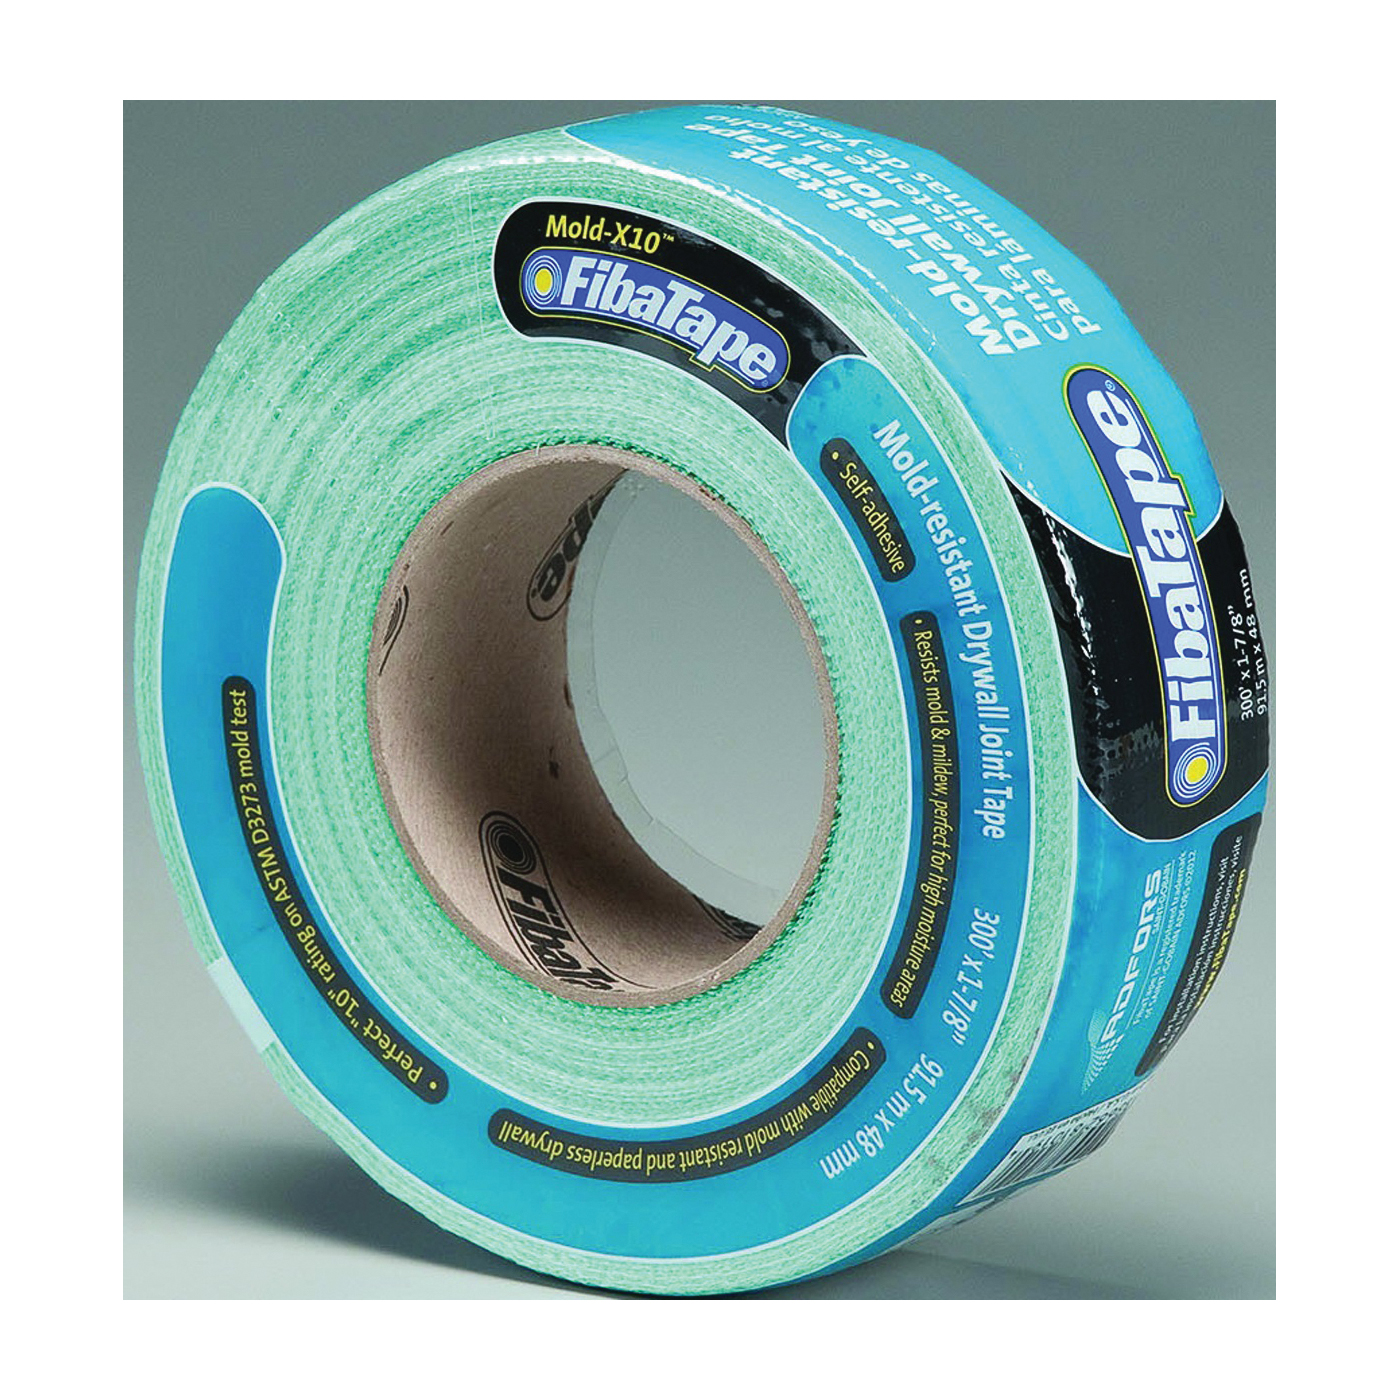 Picture of ADFORS Mold-X10 FDW8664-U Drywall Tape Wrap, 300 ft L, 1-7/8 in W, 0.3 mm Thick, Green, Wrap